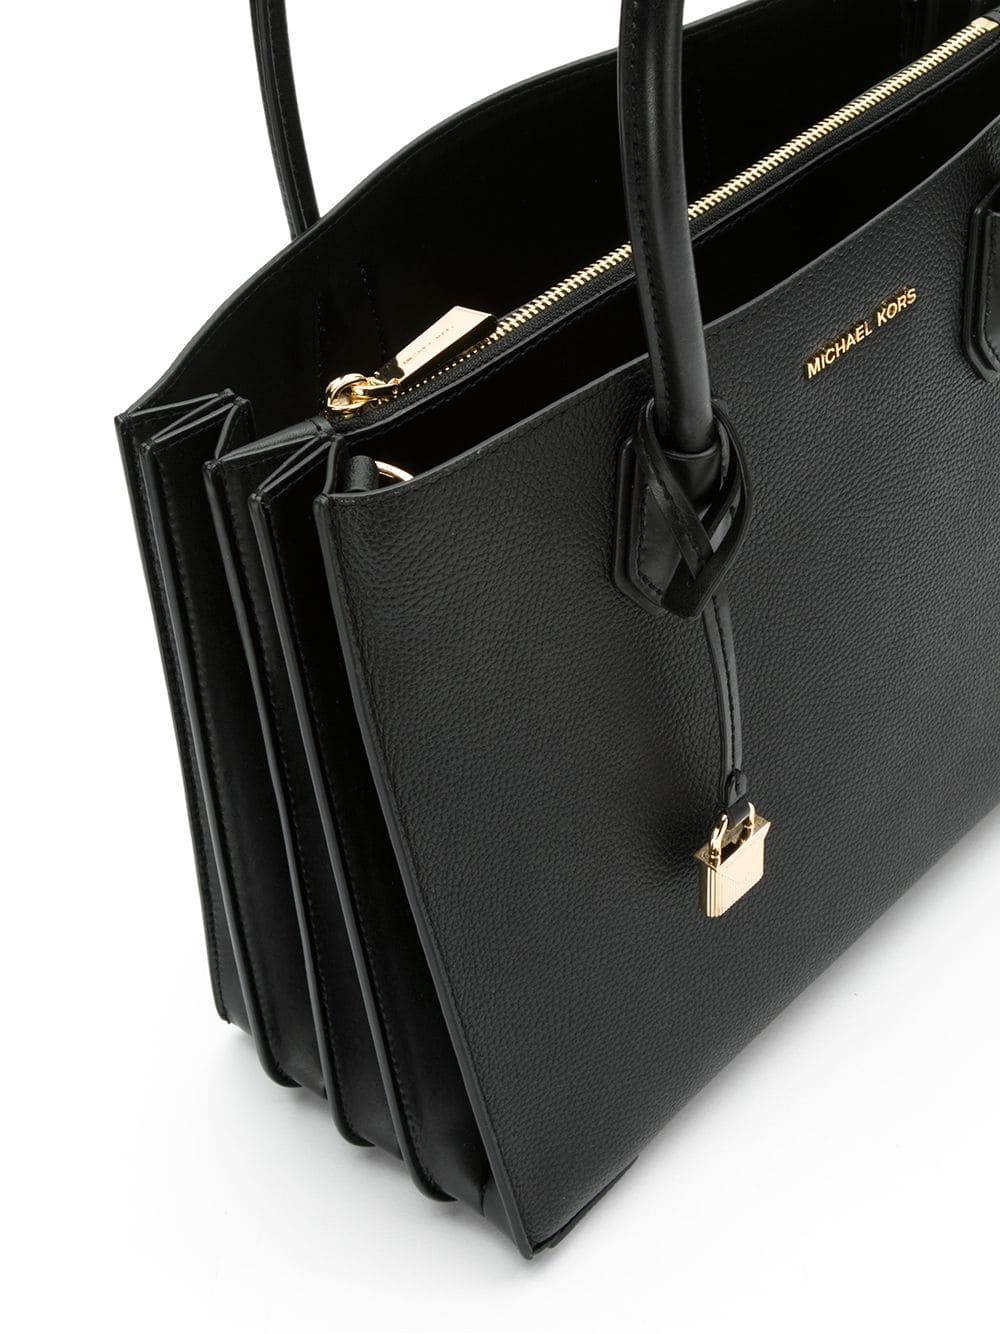 5f692b5a06bf michael kors mk LOGO TOTE BAG available on montiboutique.com - 27057